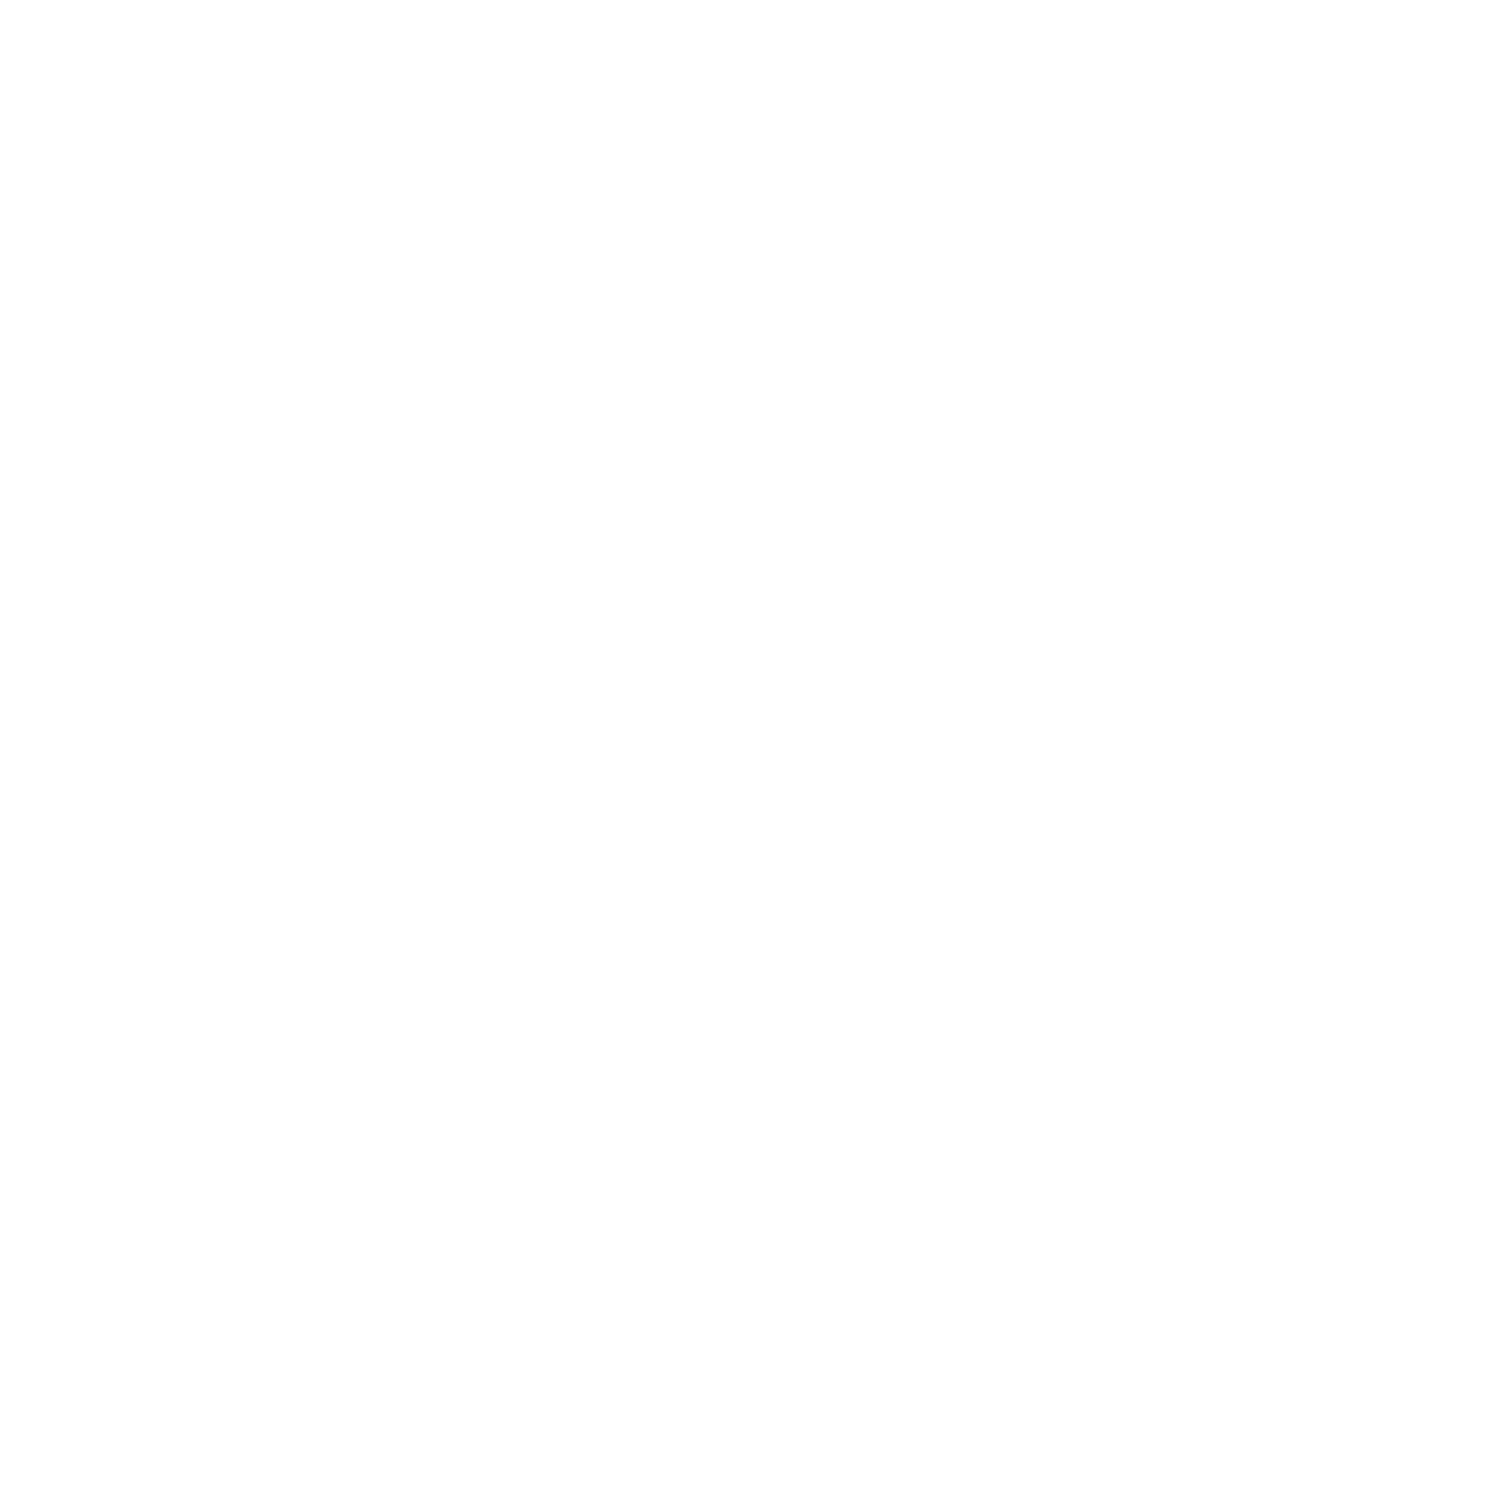 Ariana Fridman Design